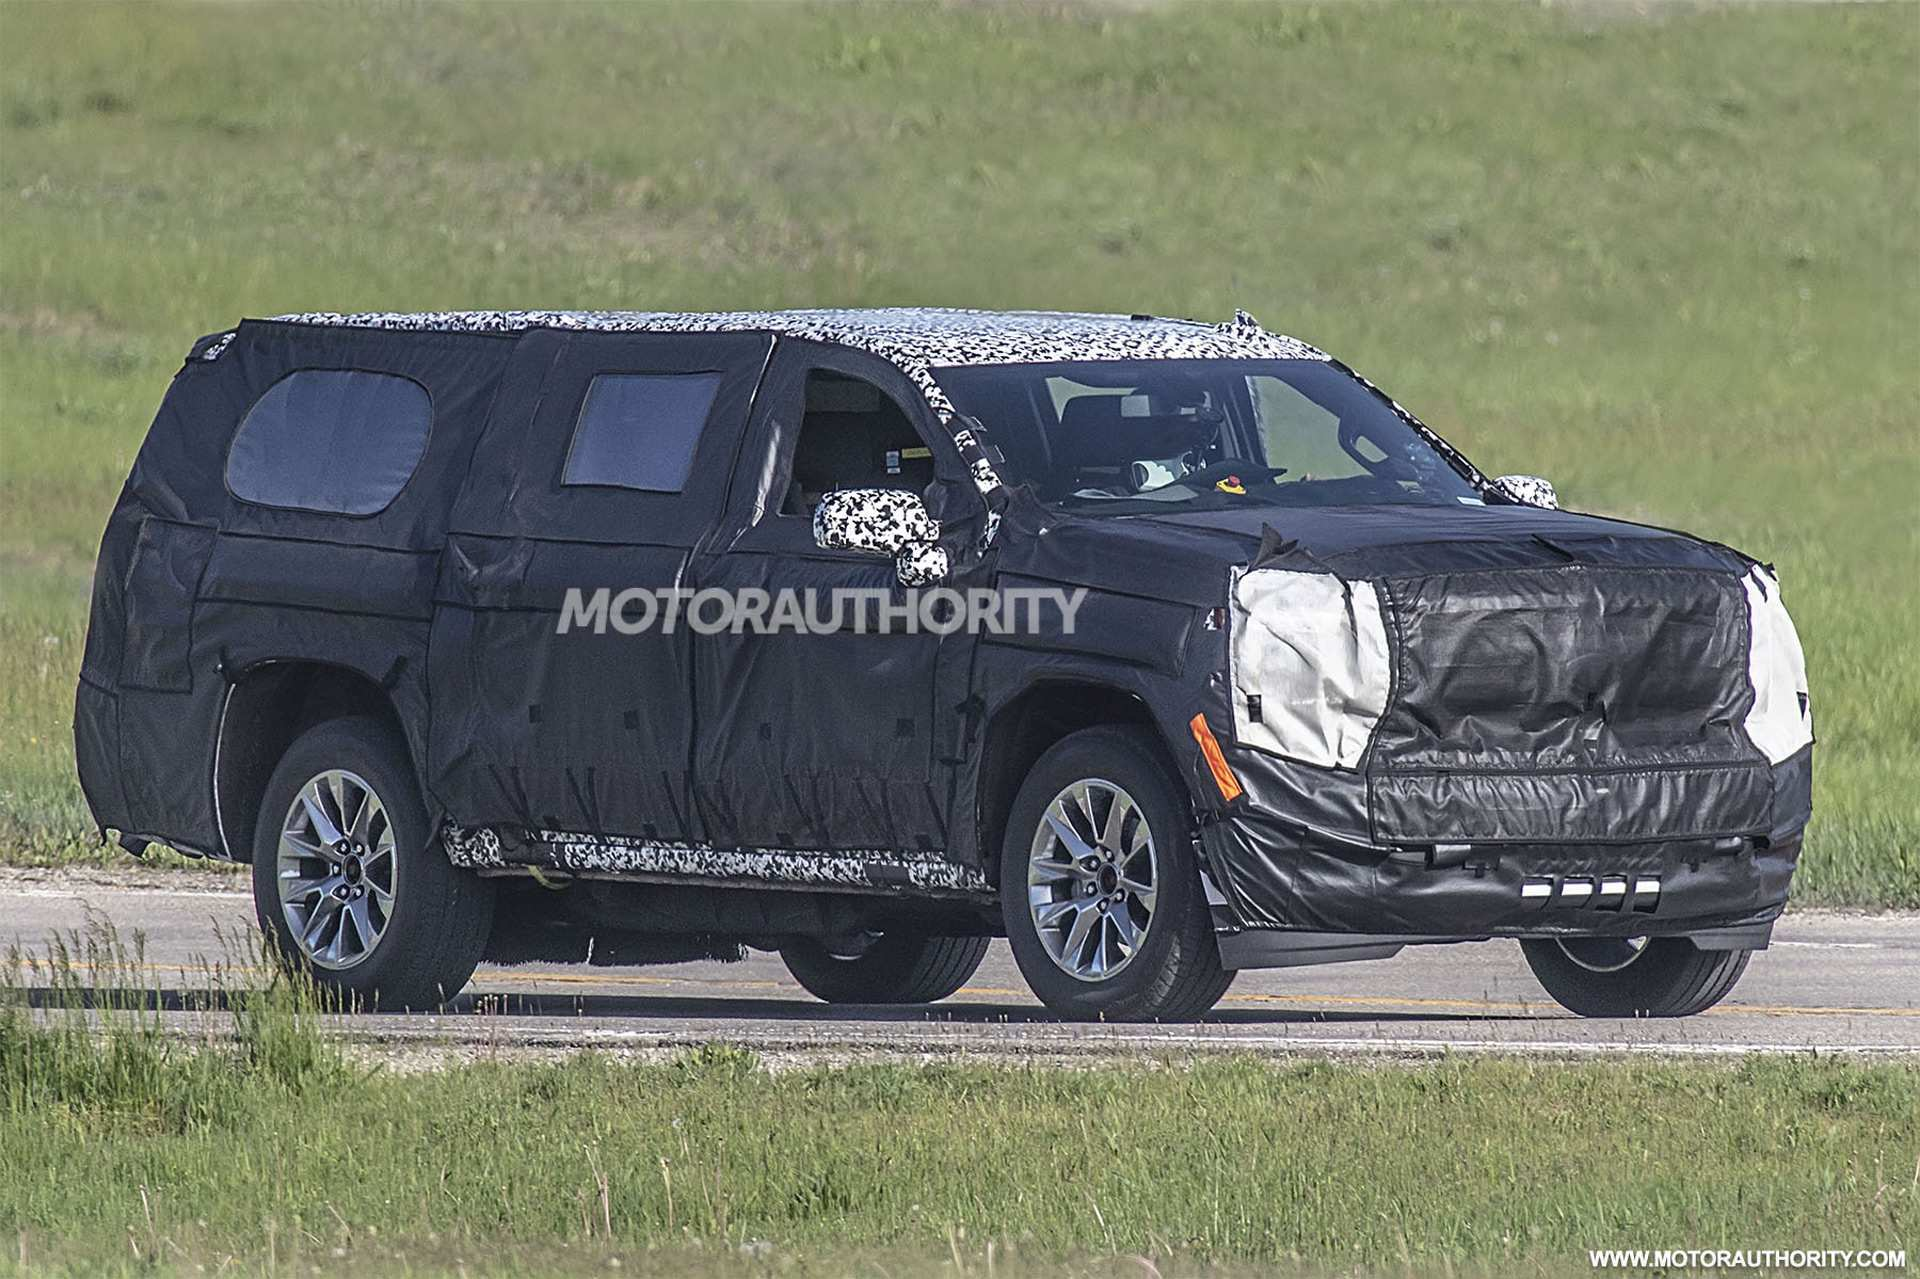 85 Best Review 2020 Chevrolet Suburban Release Date Images by 2020 Chevrolet Suburban Release Date